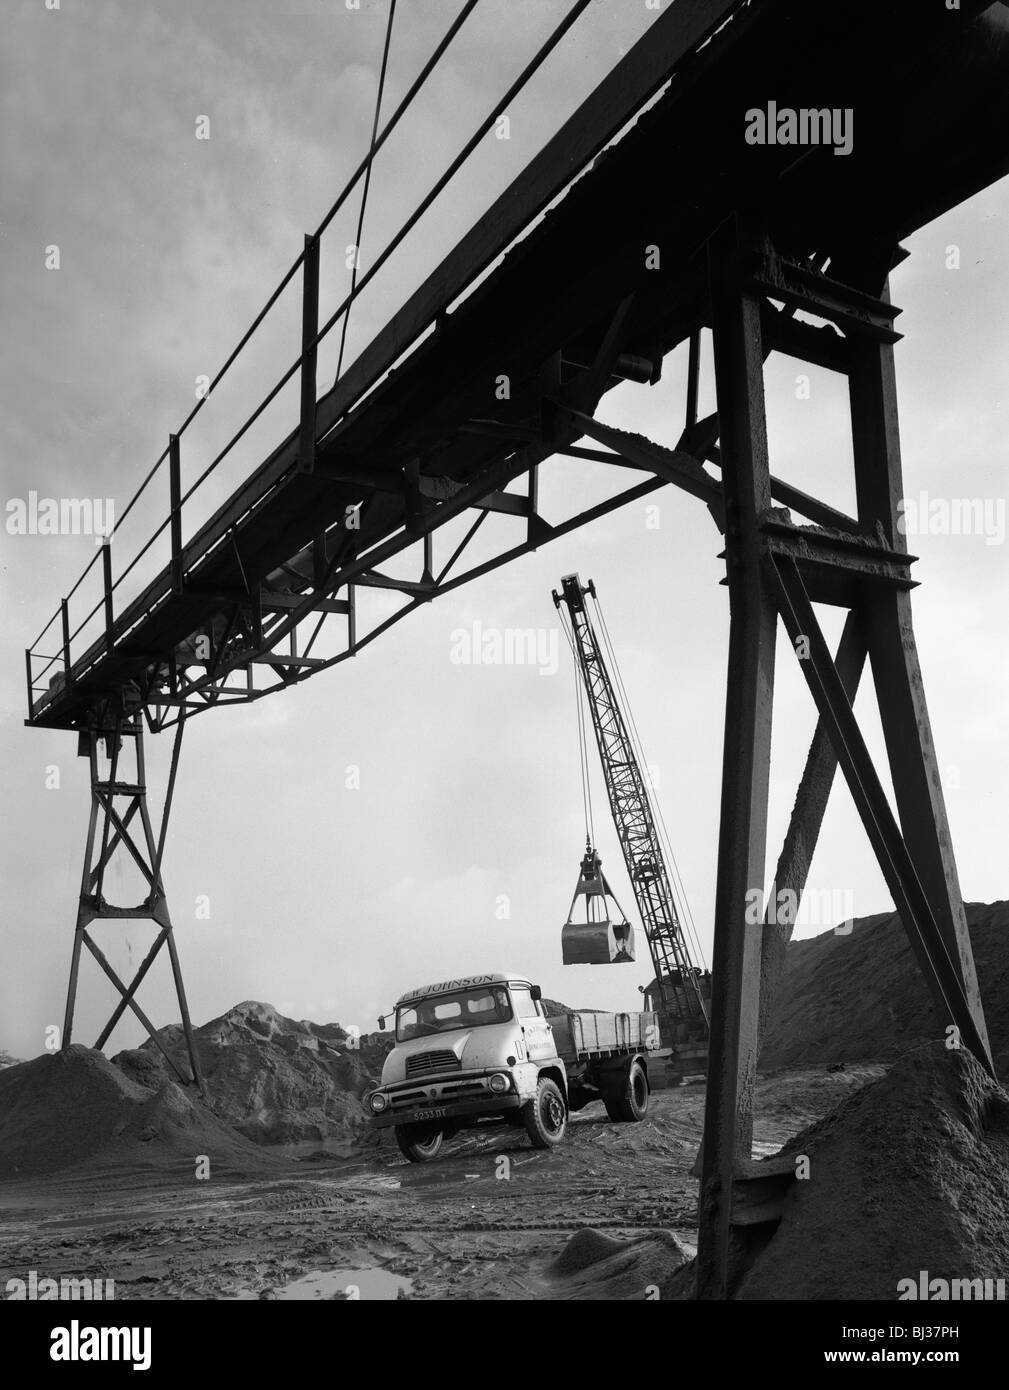 Loading a Ford Thames Trader tipper lorry, Finningley, near Doncaster, South Yorkshire, 1966. Artist: Michael Walters - Stock Image